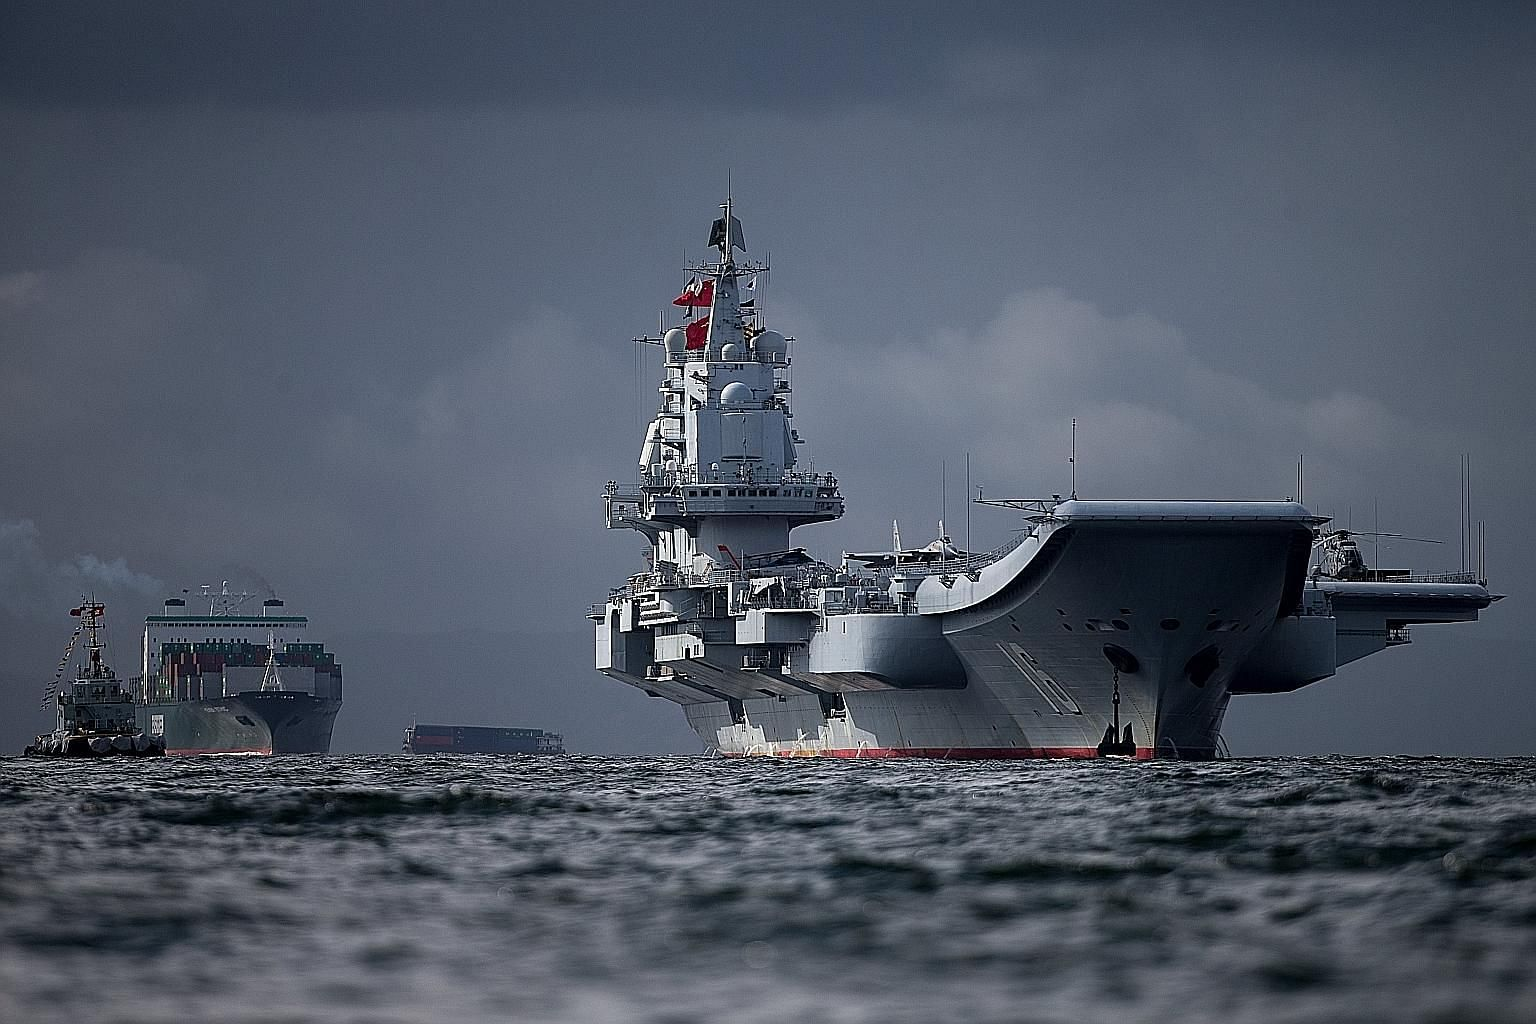 The Liaoning arriving in Hong Kong yesterday. It is accompanied by guided-missile destroyers CNS Jinan and CNS Yinchuan, and guided-missile frigate CNS Yantai, as well as J-15 carrier-borne fighter jets and helicopters in a display of military might